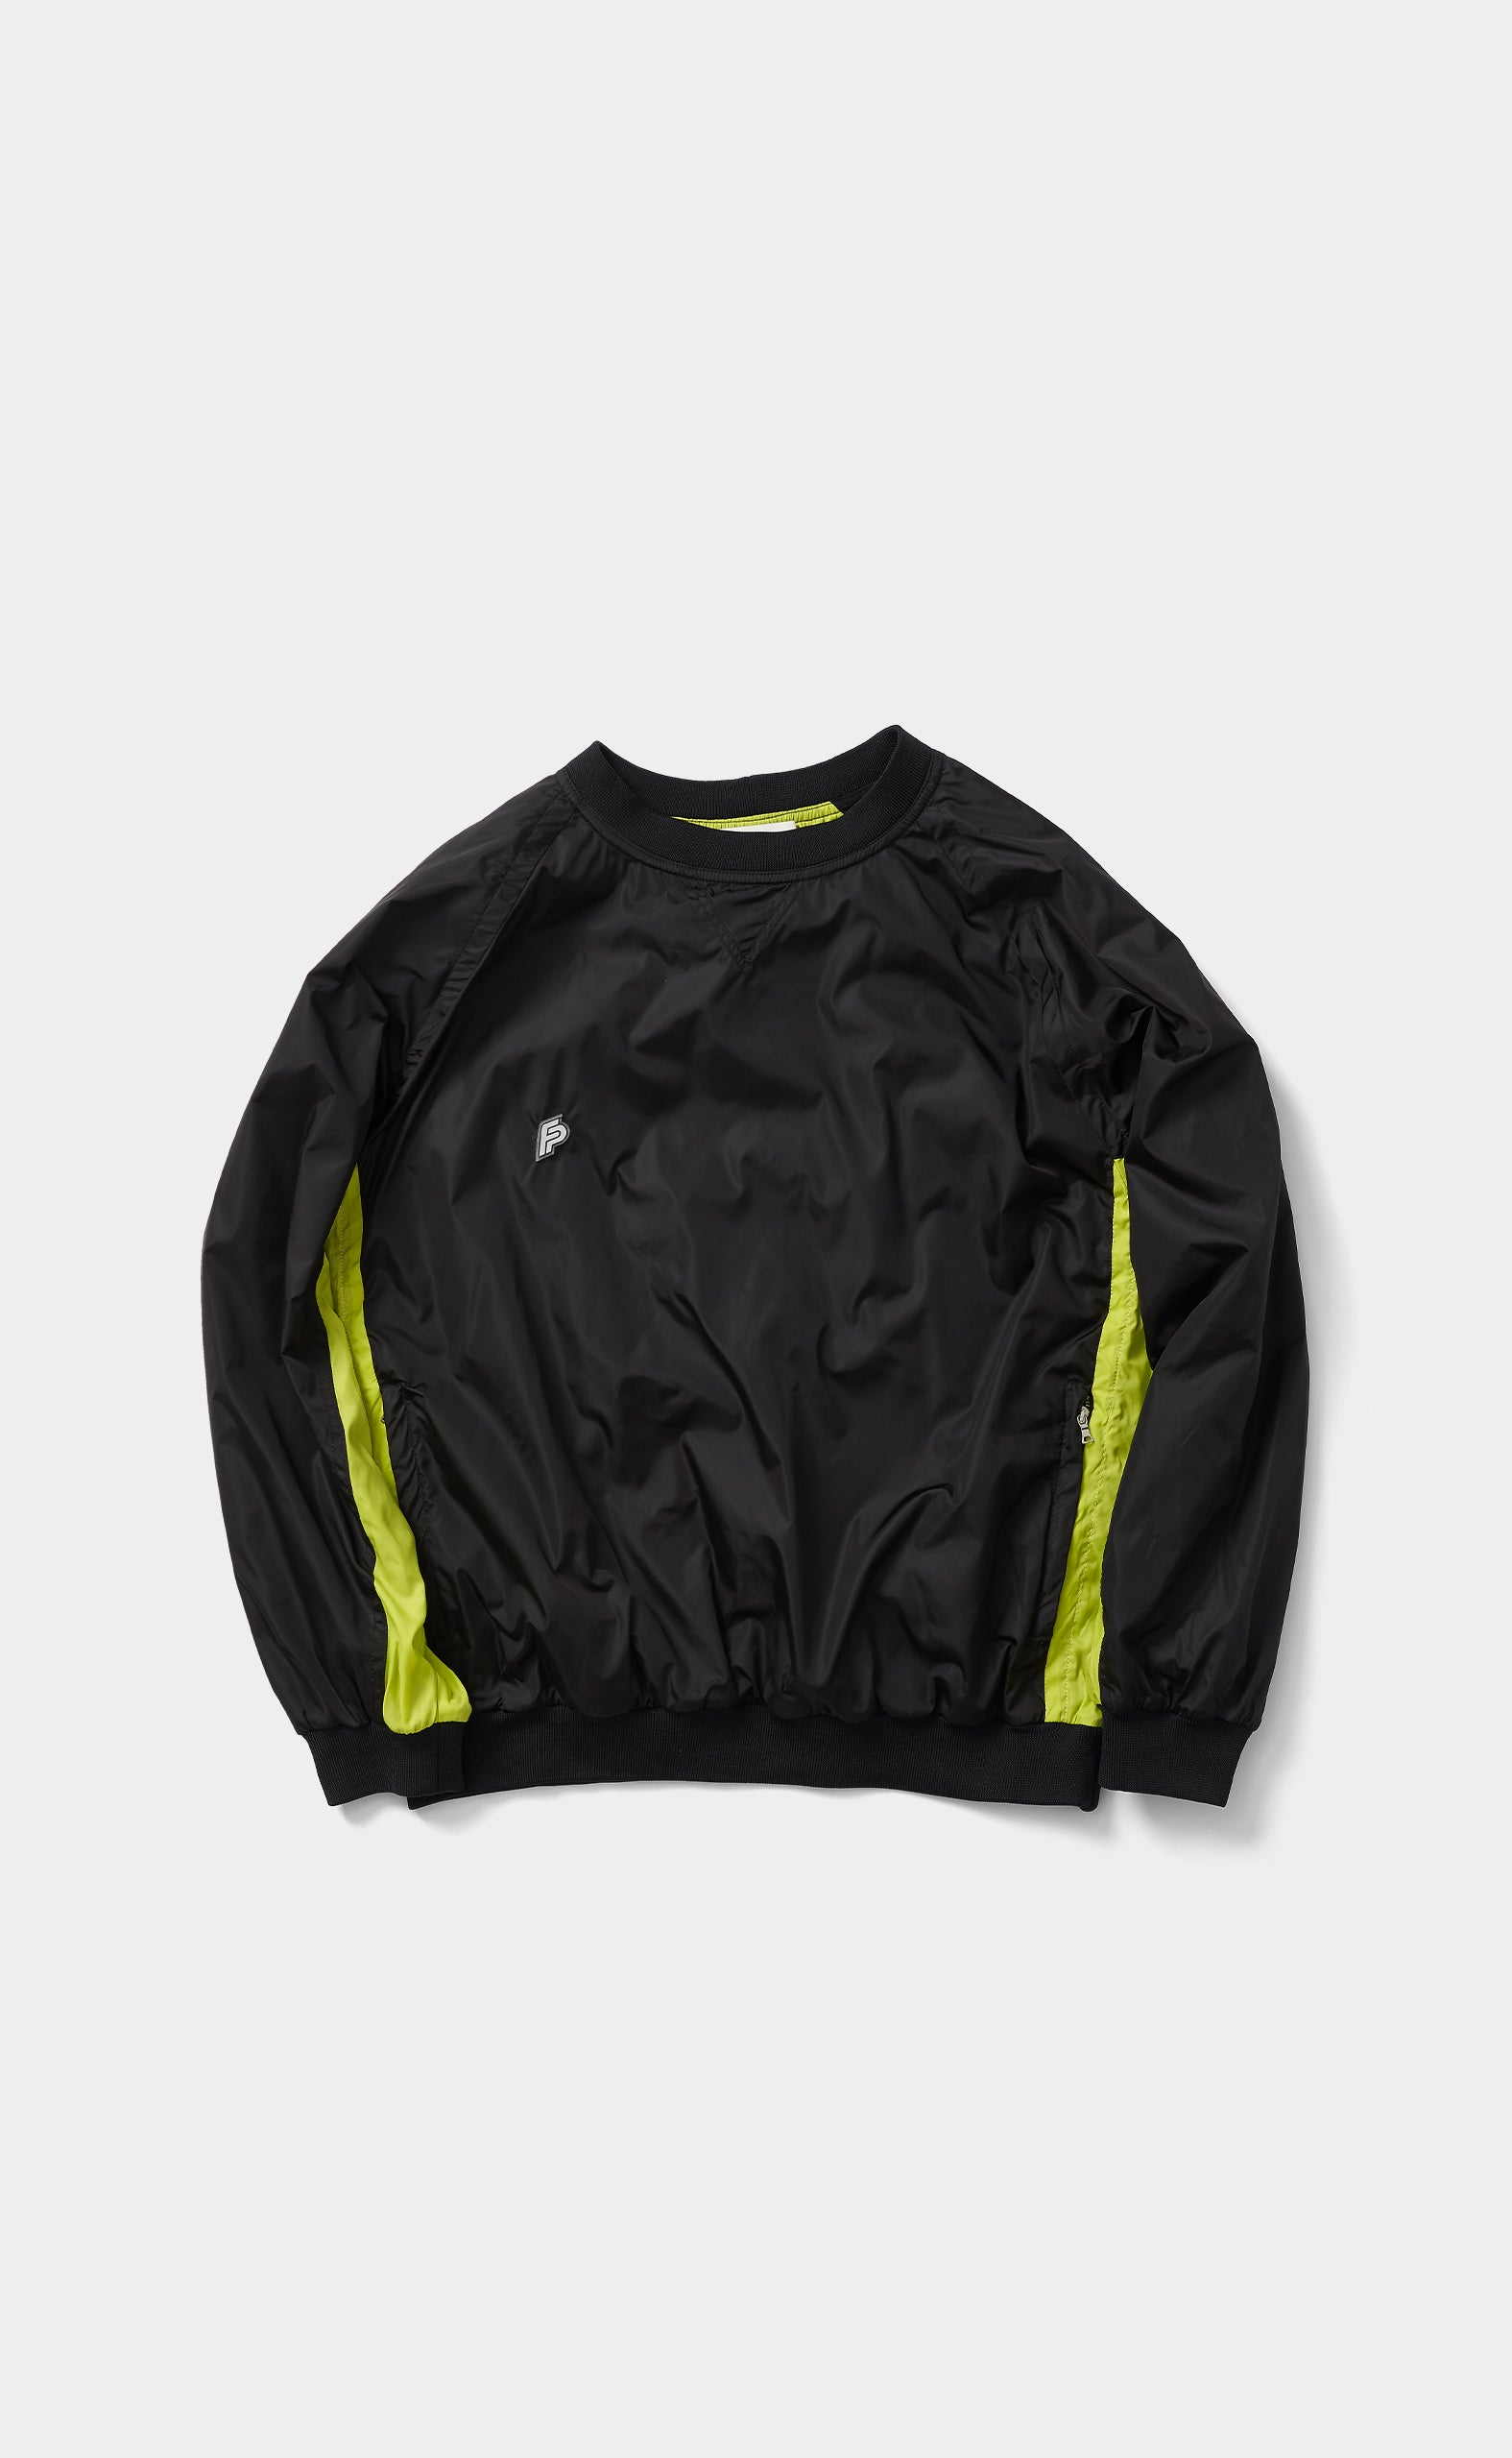 Nylon Sweater Black/Acid Lime - men